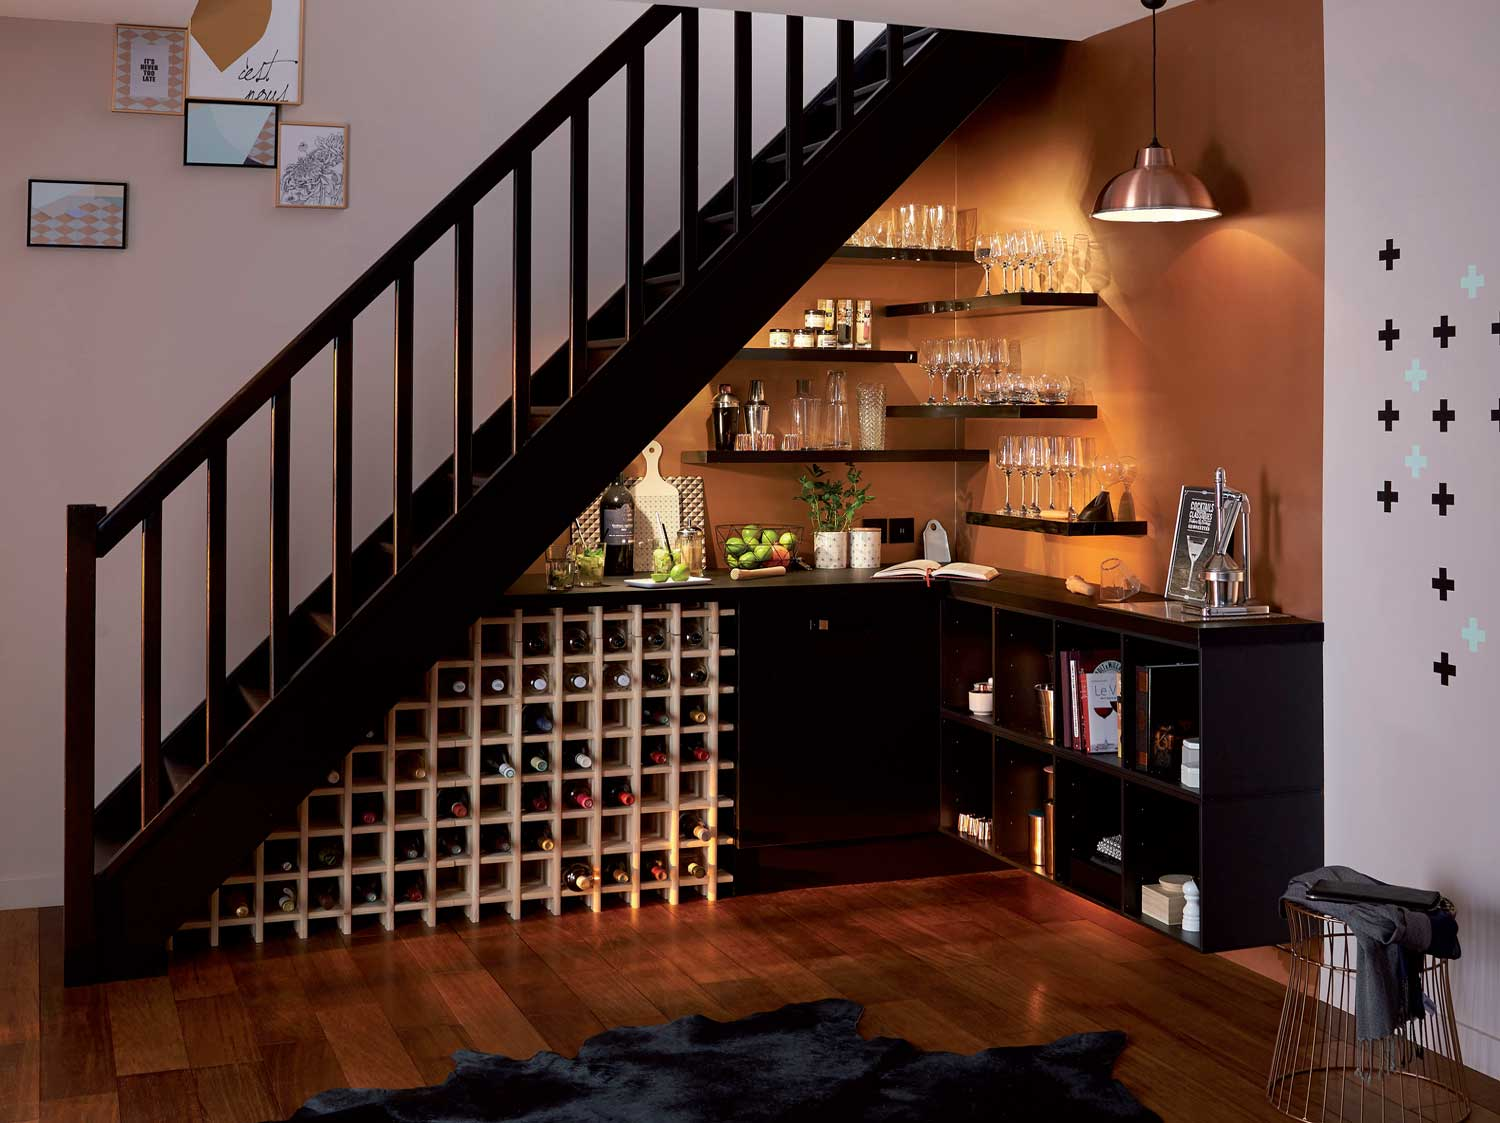 comment r aliser un bar cocktail sous votre escalier leroy merlin. Black Bedroom Furniture Sets. Home Design Ideas